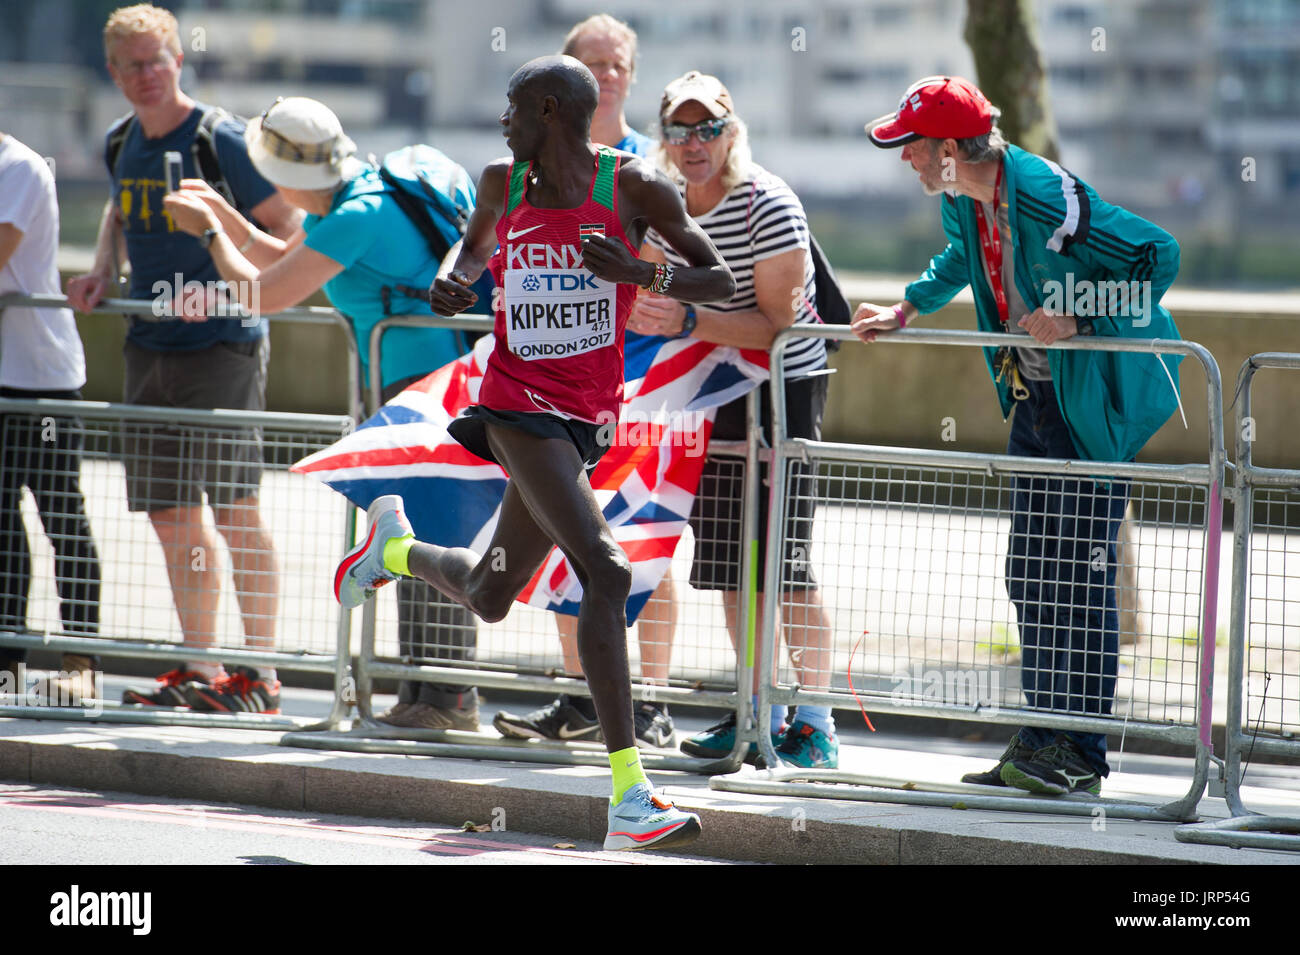 London, UK. 6th August, 2017. Gideon Kipketer (Kenya) checking behind him for other runners at the IAAF World Athletics Championships Men's Marathon Race Credit: Phil Swallow Photography/Alamy Live News - Stock Image